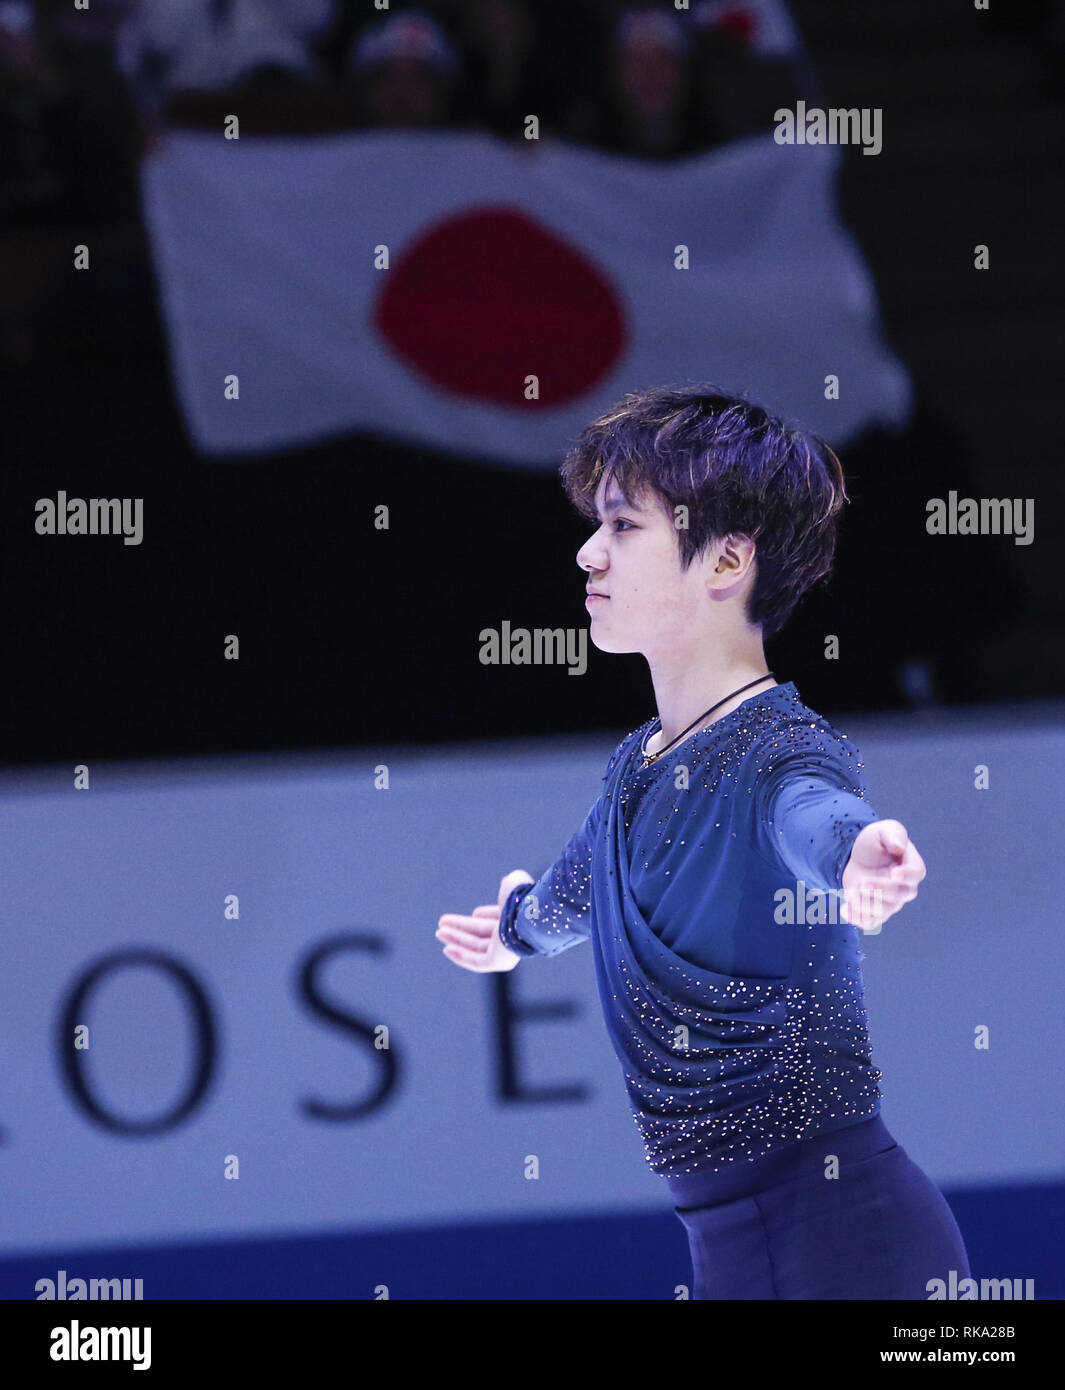 Los Angeles, California, USA. 10th Feb, 2019. Gold medal winner Shoma Uno of Japan poses at the ISU Four Continents Figure Skating Championship at the Honda Center in Anaheim, California on February 9, 2019. Credit: Ringo Chiu/ZUMA Wire/Alamy Live News Stock Photo